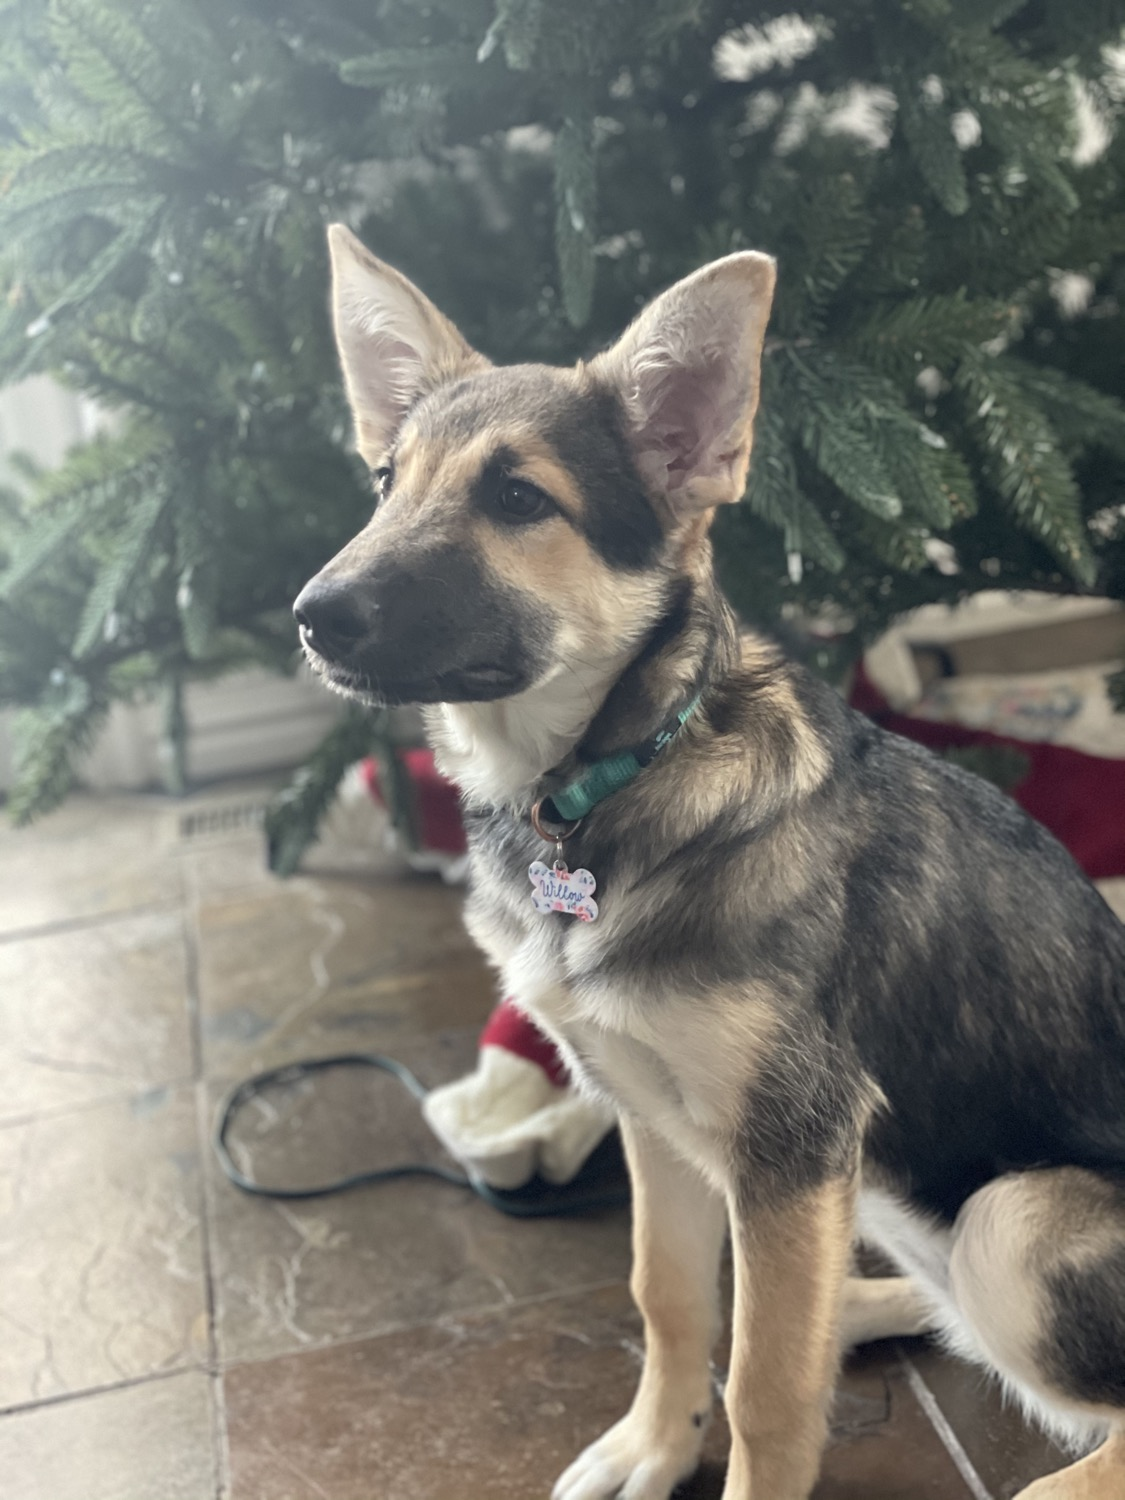 Provide a home for a service dog in training